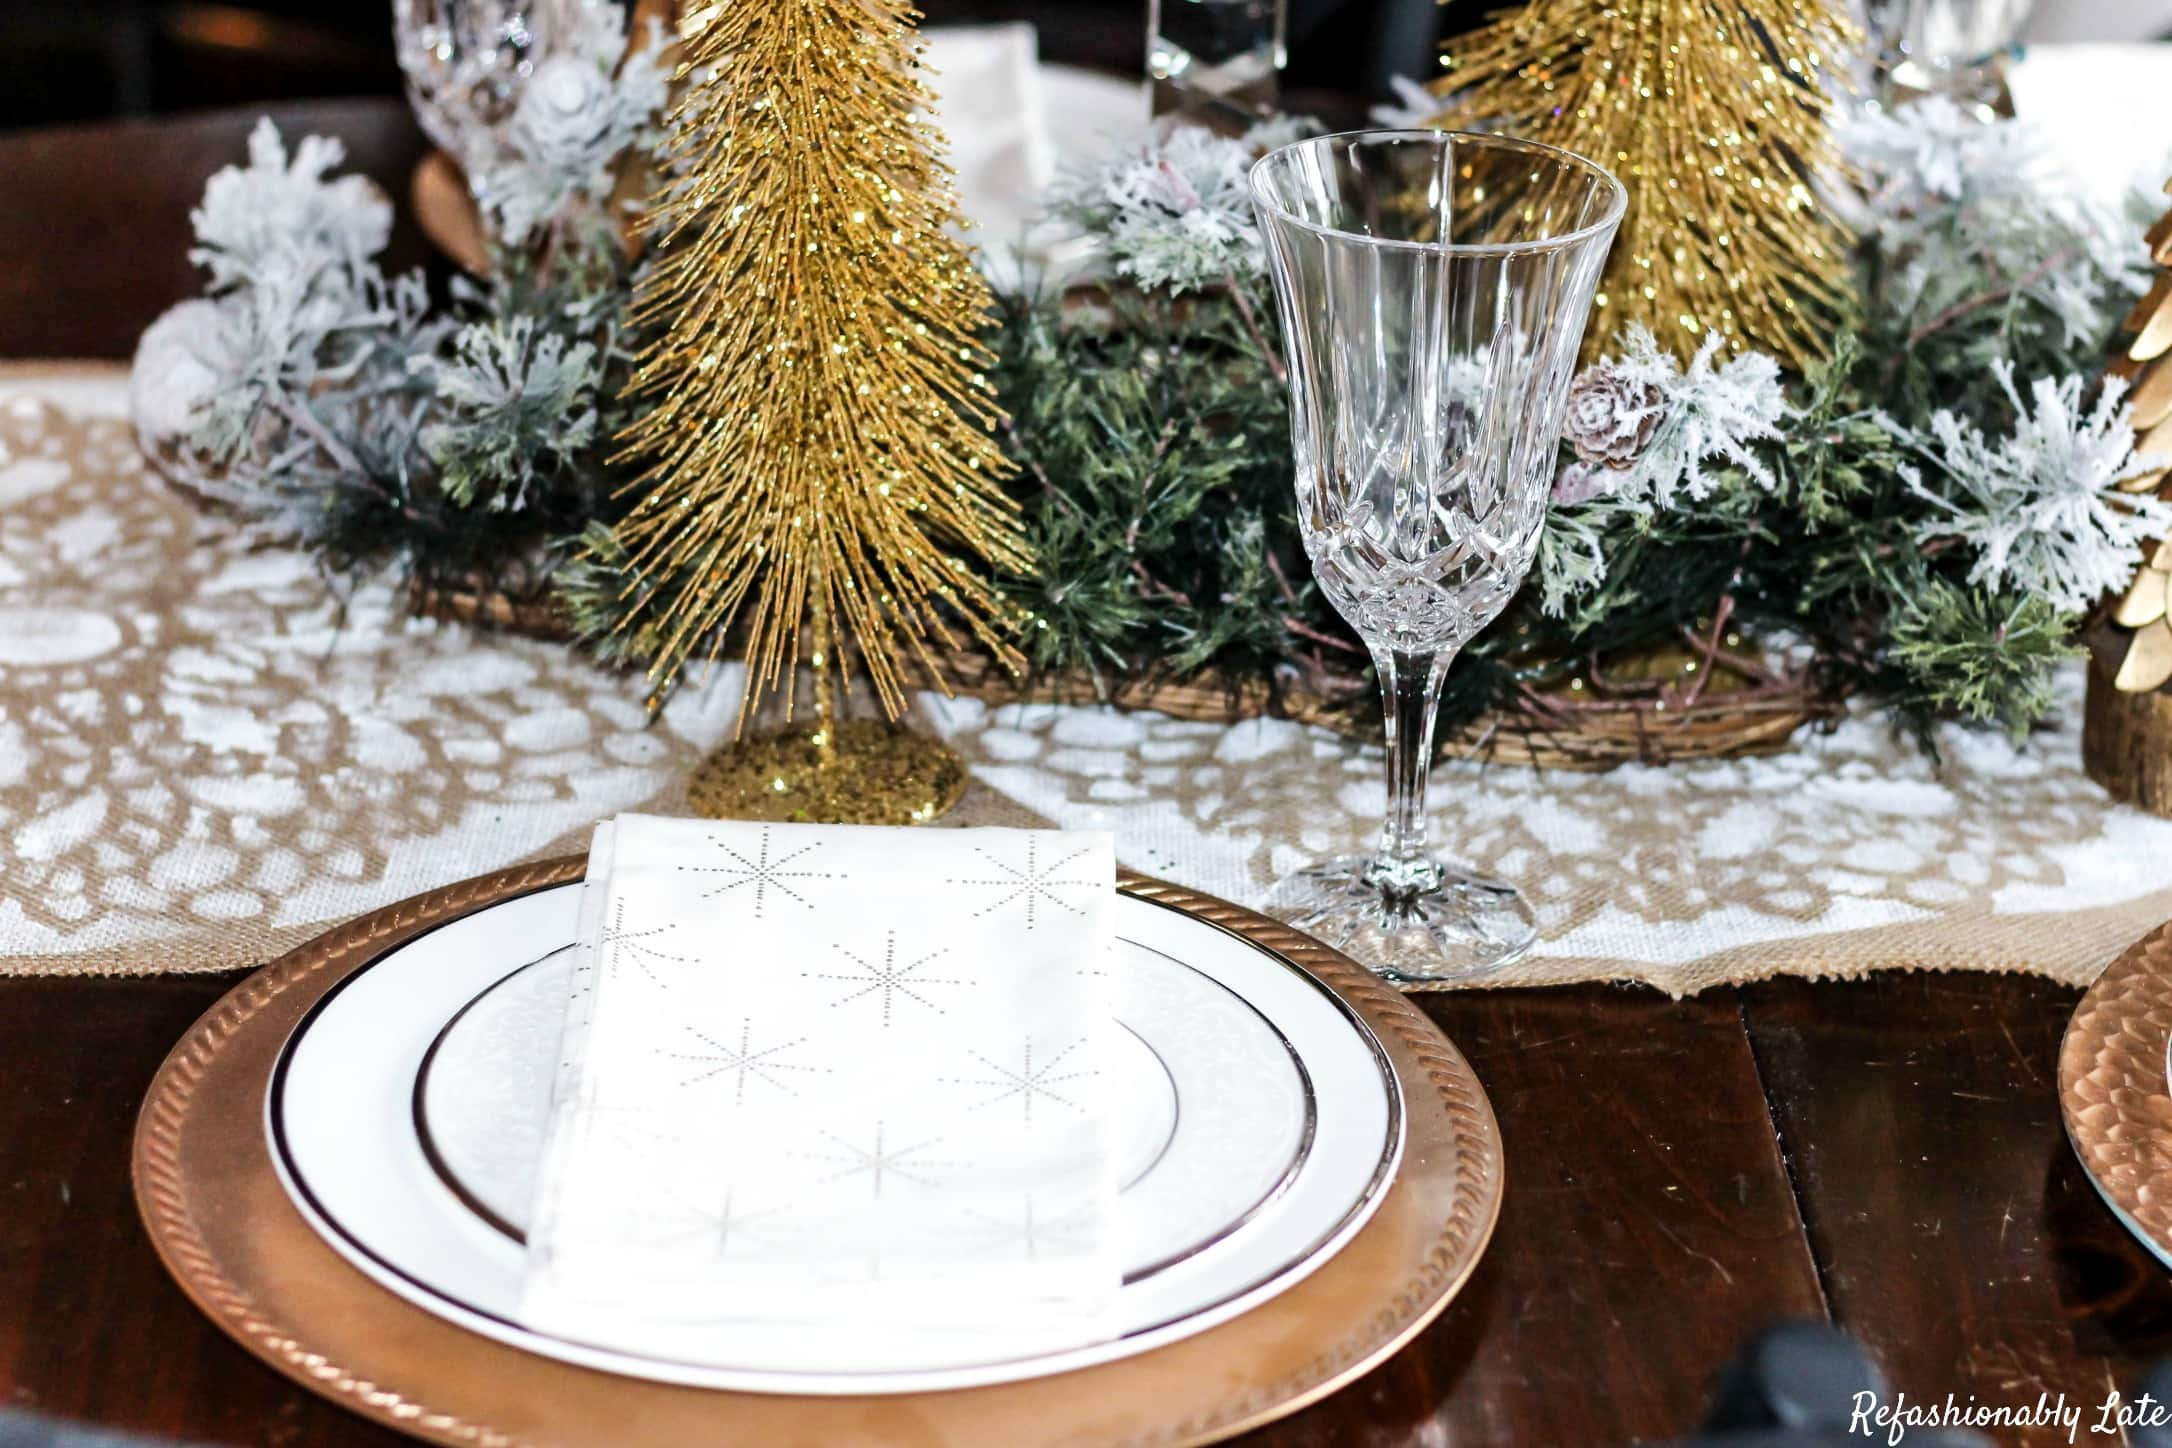 A Burlap Christmas - DIY Burlap Table Runner - www.refashionablylate.com